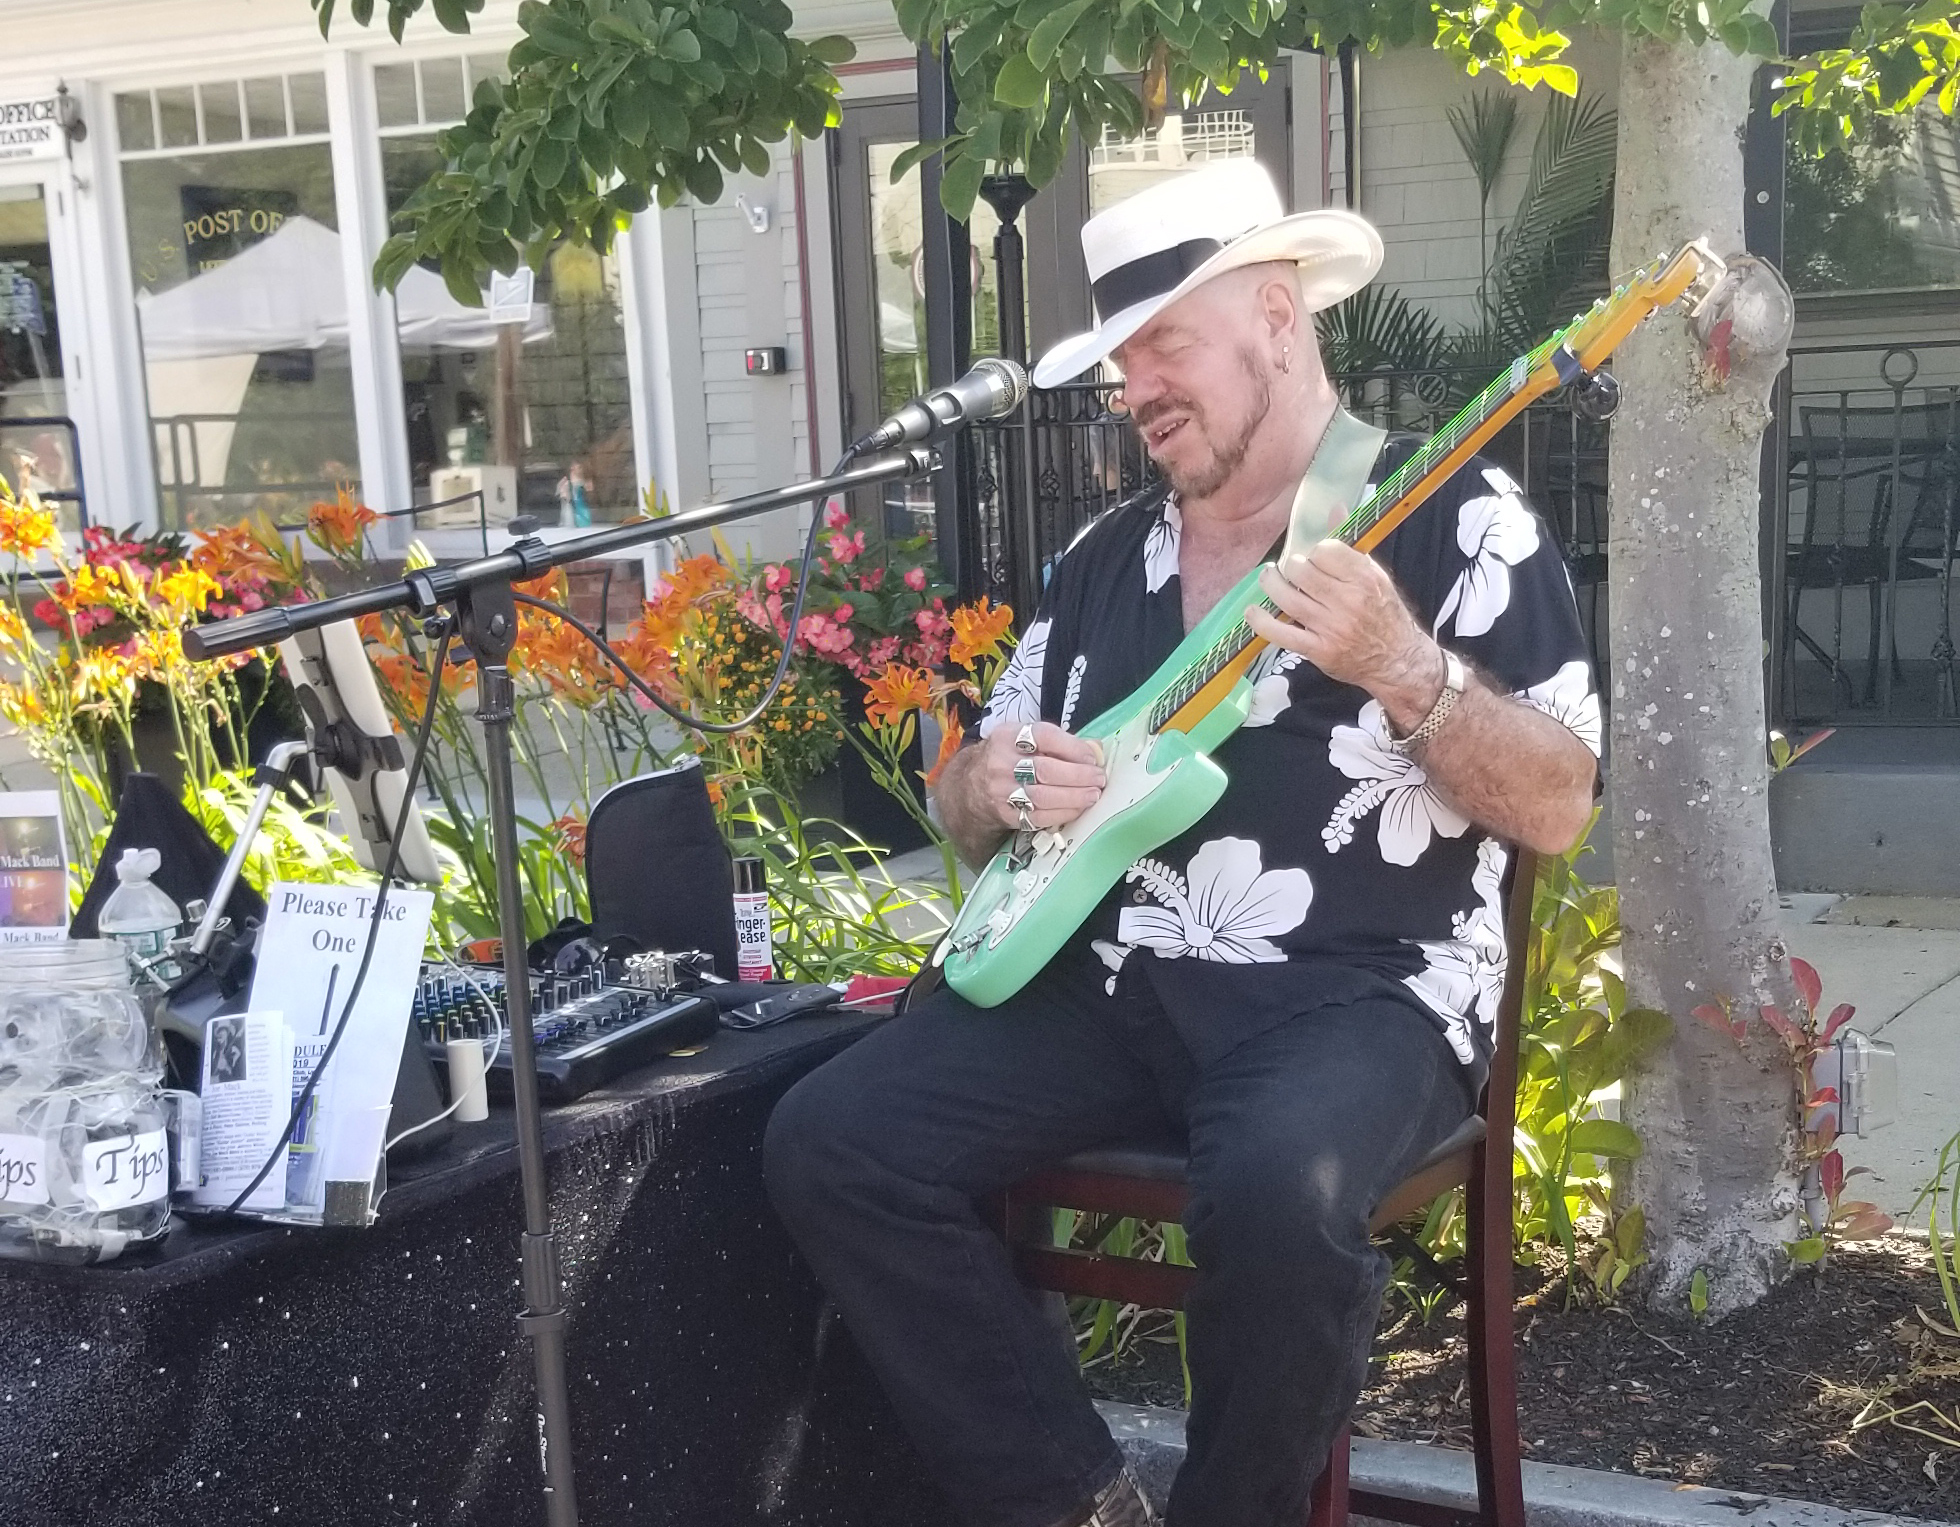 rock star joe mack performing at the farmers market